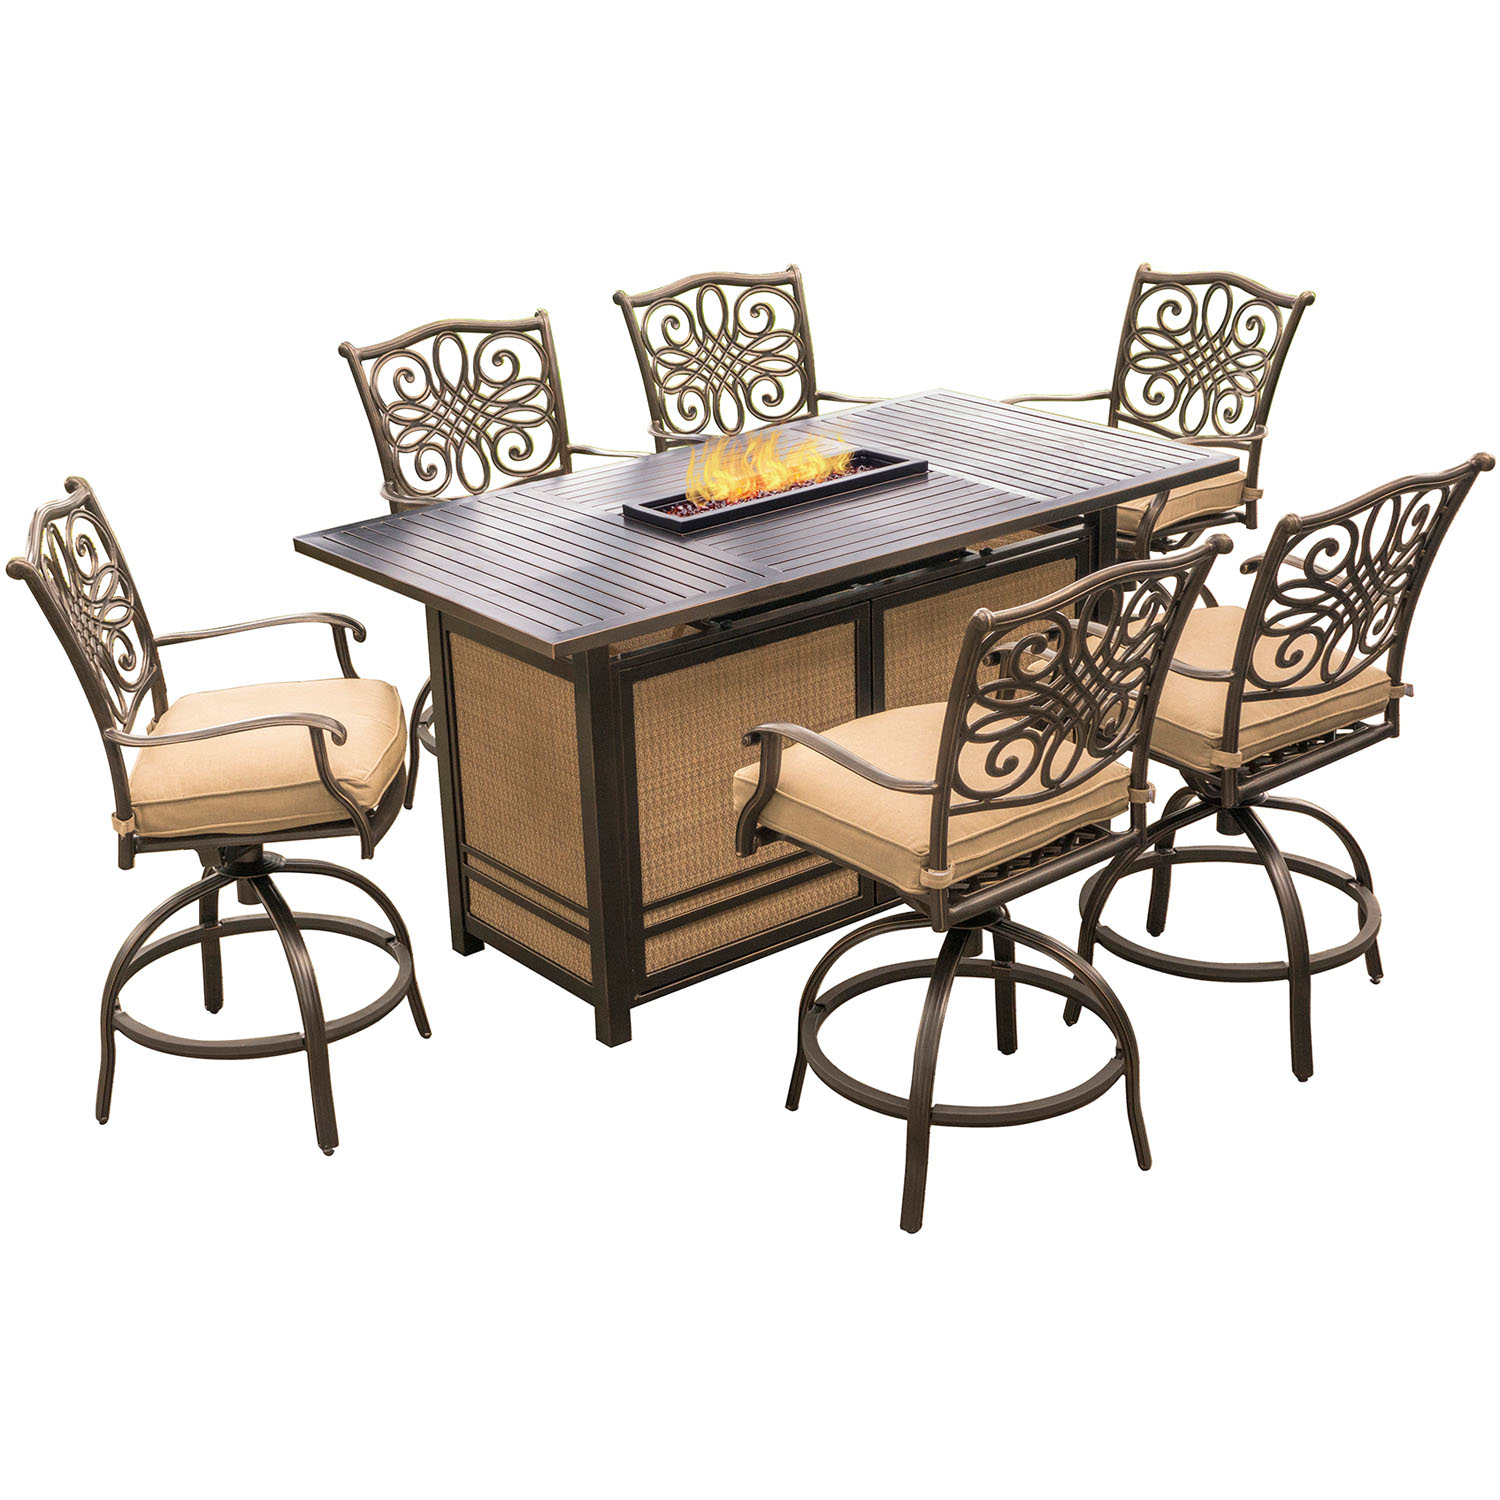 hanover traditions 7 piece high dining set in tan with 30 000 btu fire pit table trad7pcfpbr. Black Bedroom Furniture Sets. Home Design Ideas